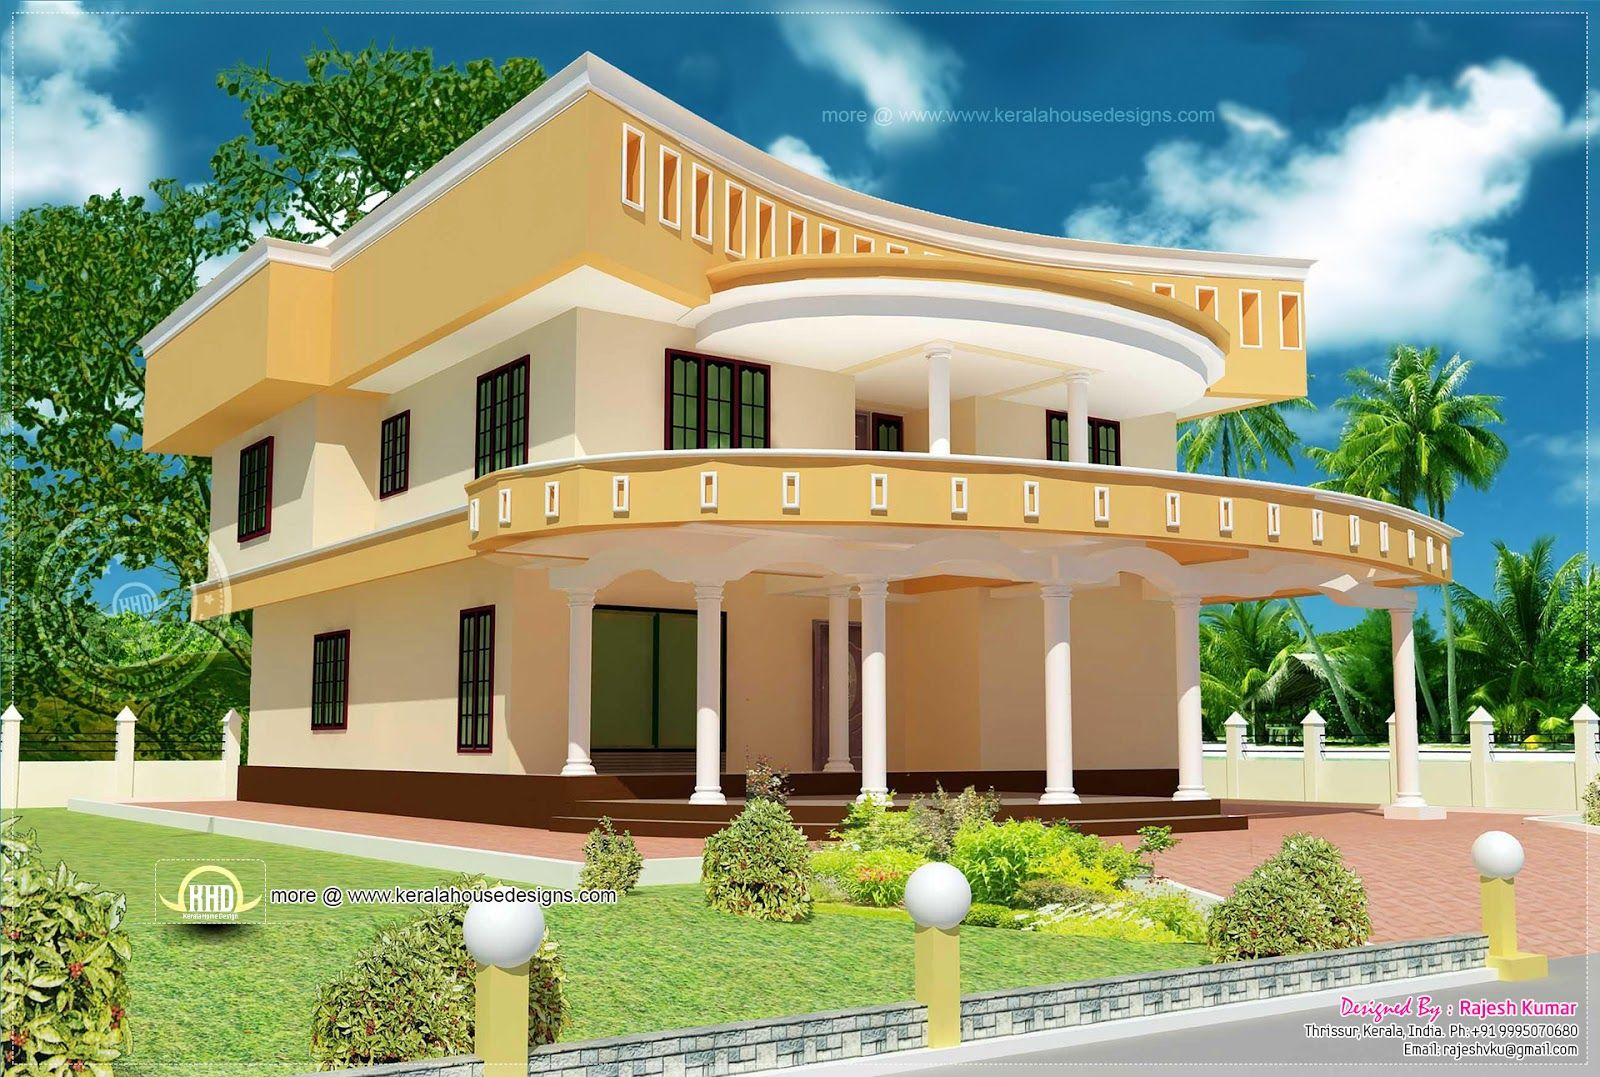 Unique home design in Kerala - Kerala home design and ...